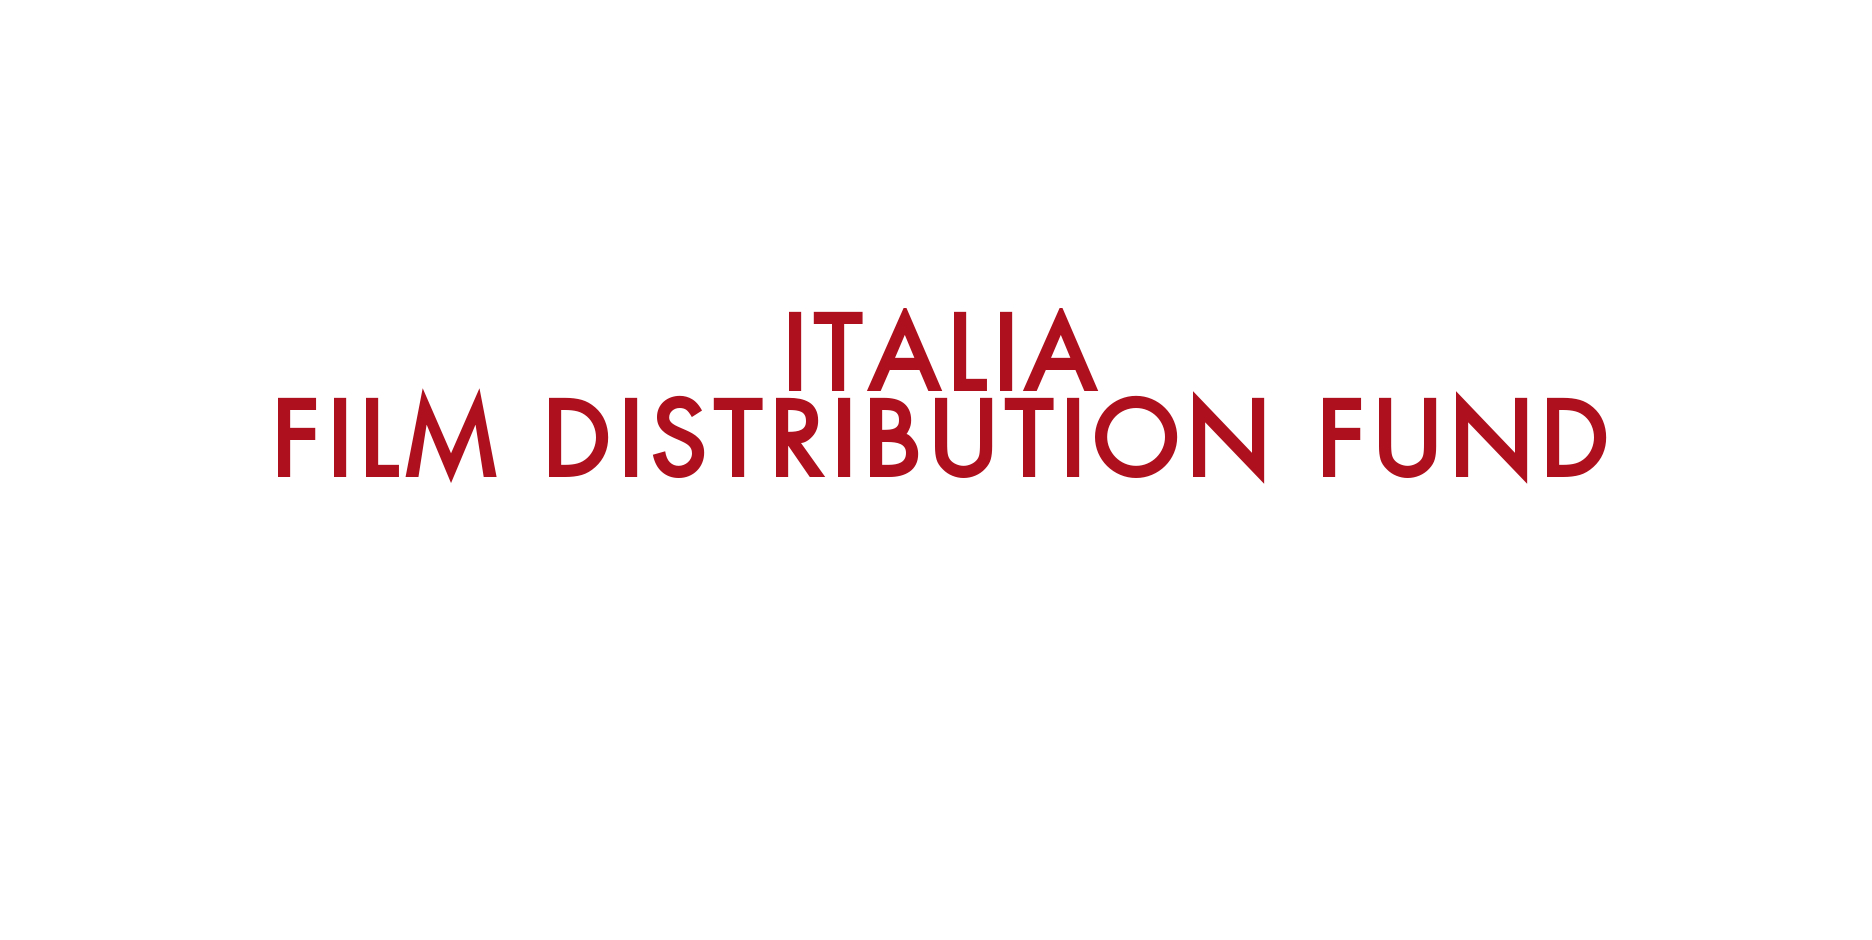 ITALIA FILM DISTRIBUTION FUND